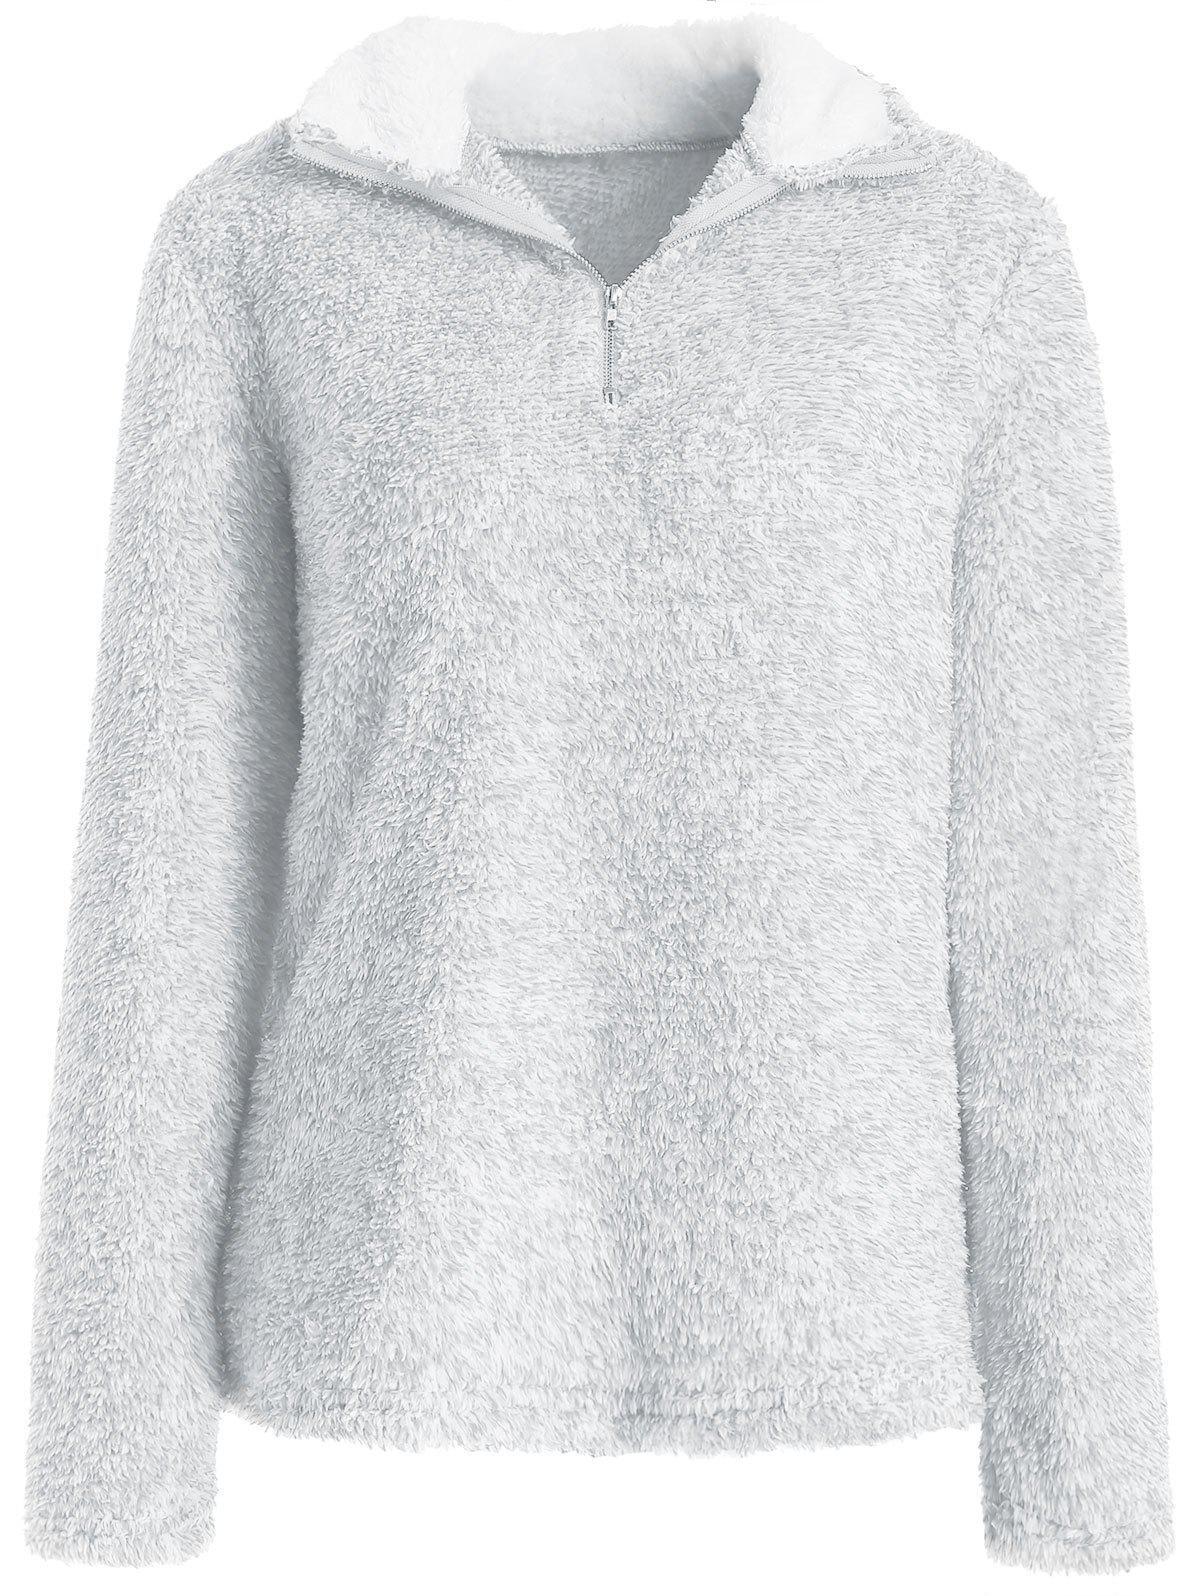 Half Zip Fluffy Sweatshirt - PLATINUM S